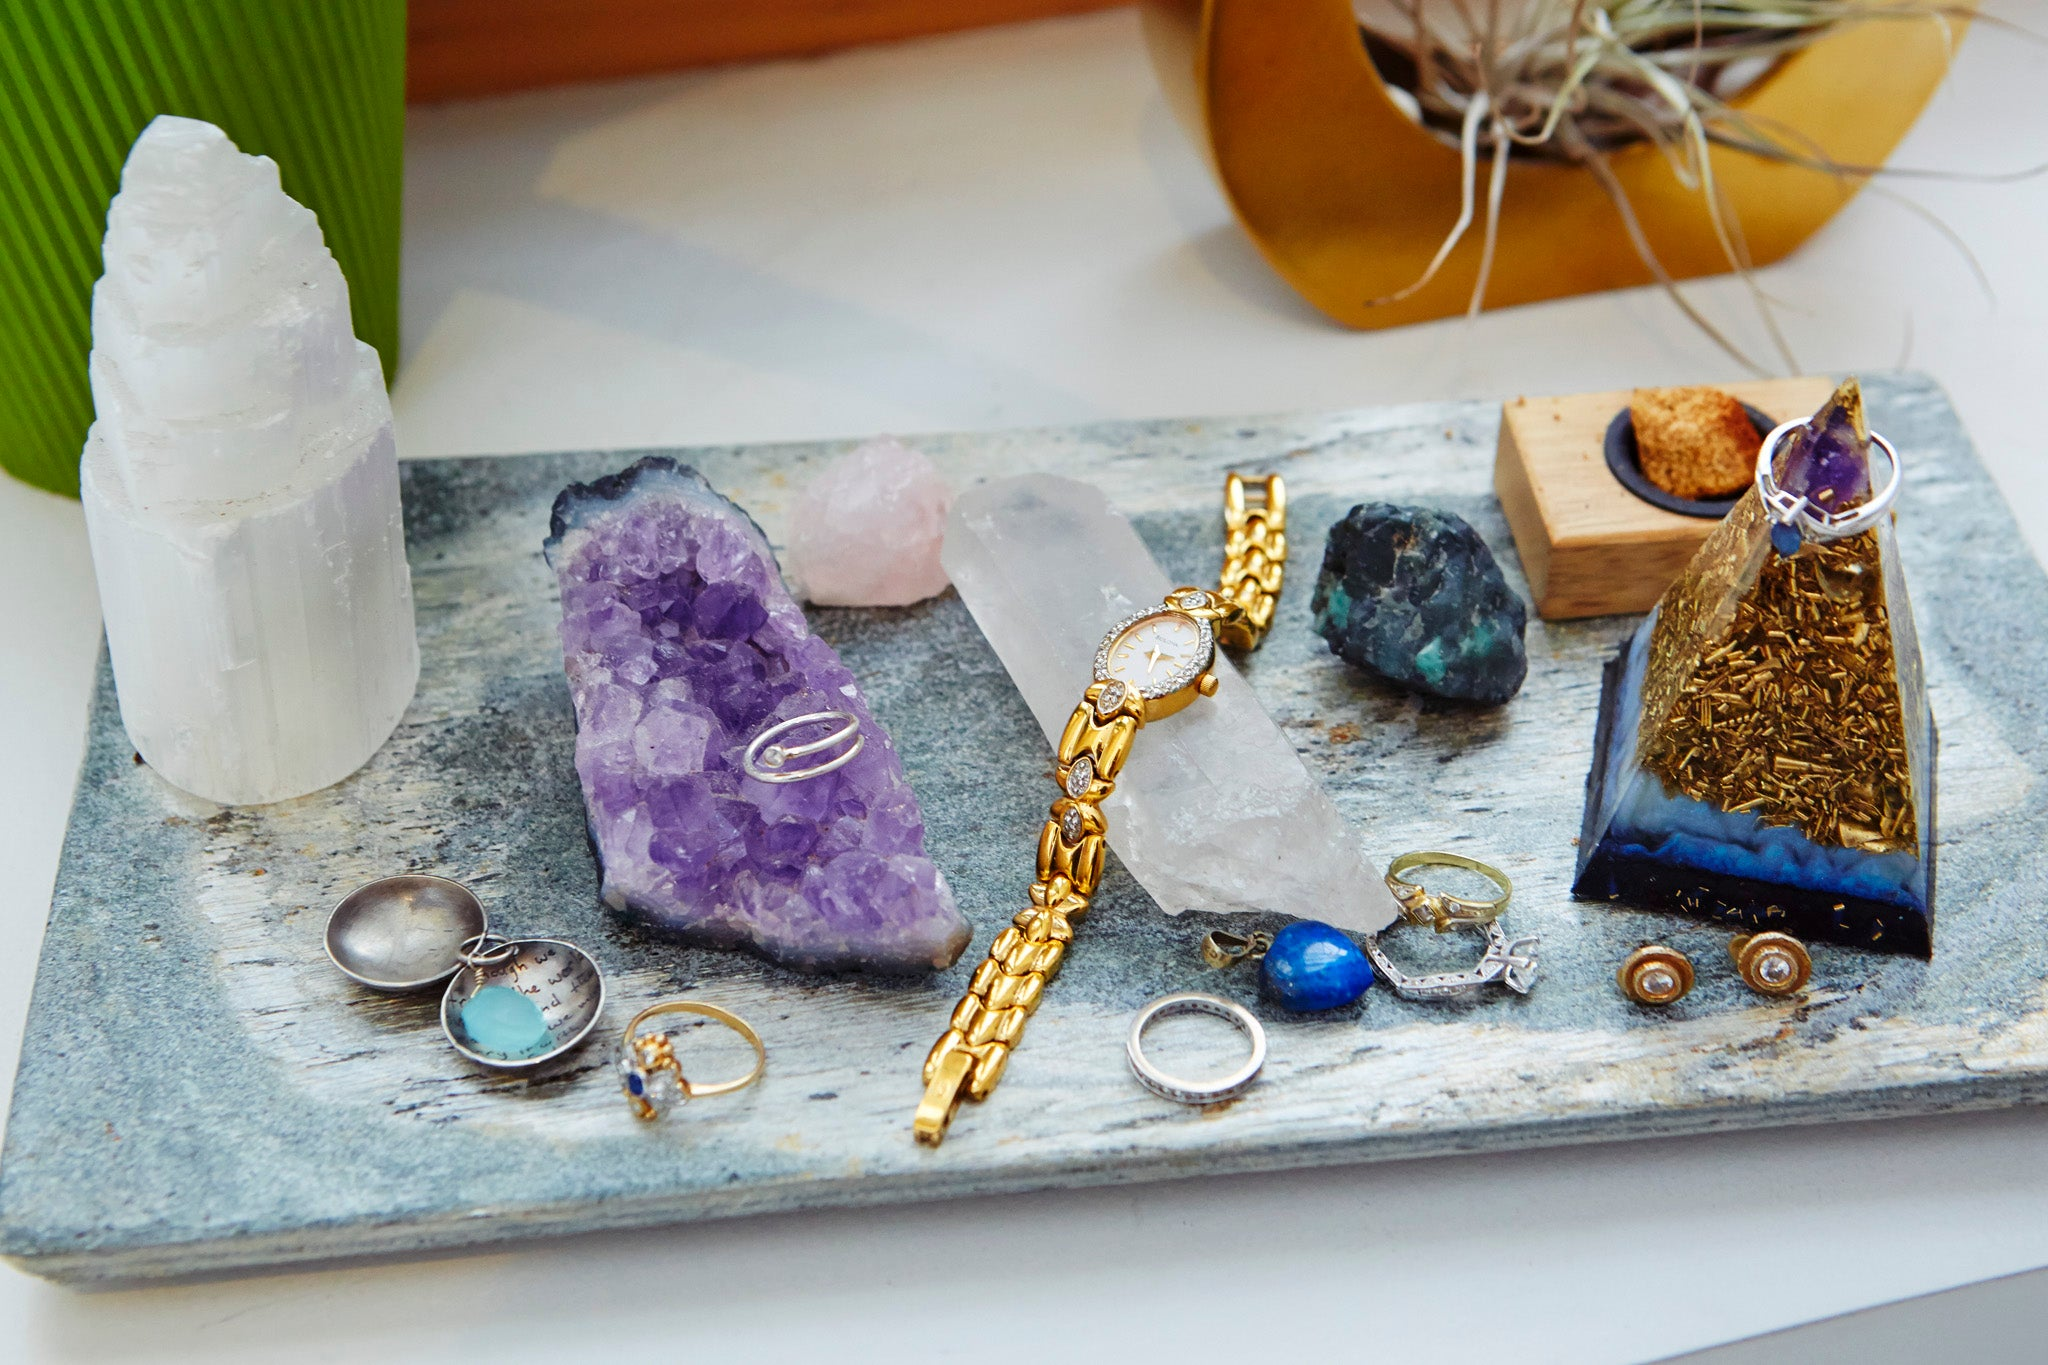 Smoothie Beauty founder's jewelry displayed flat lay